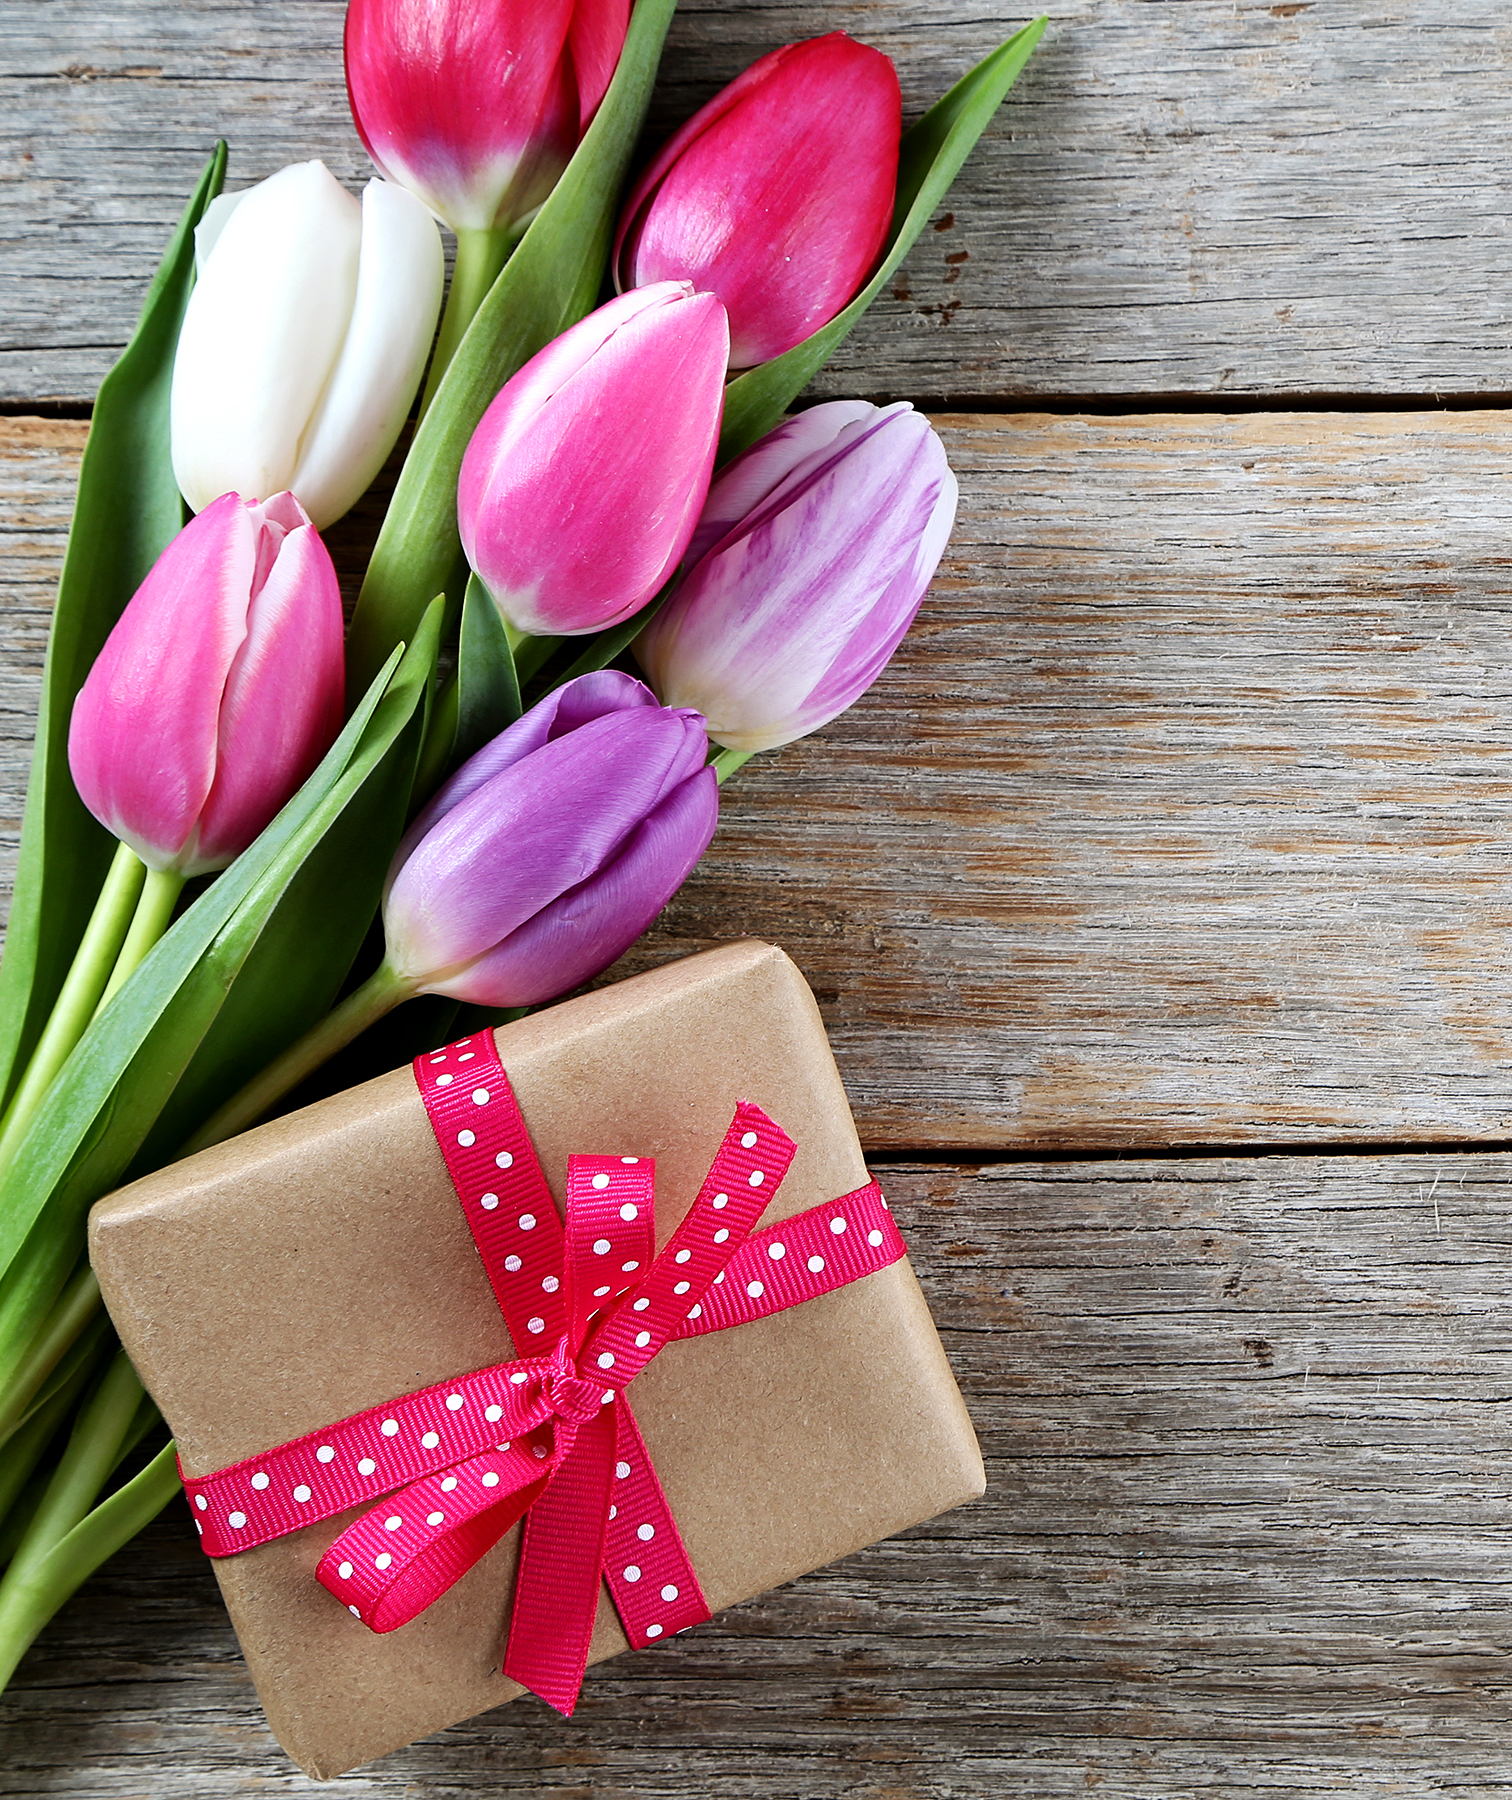 Gift and tulips on wood